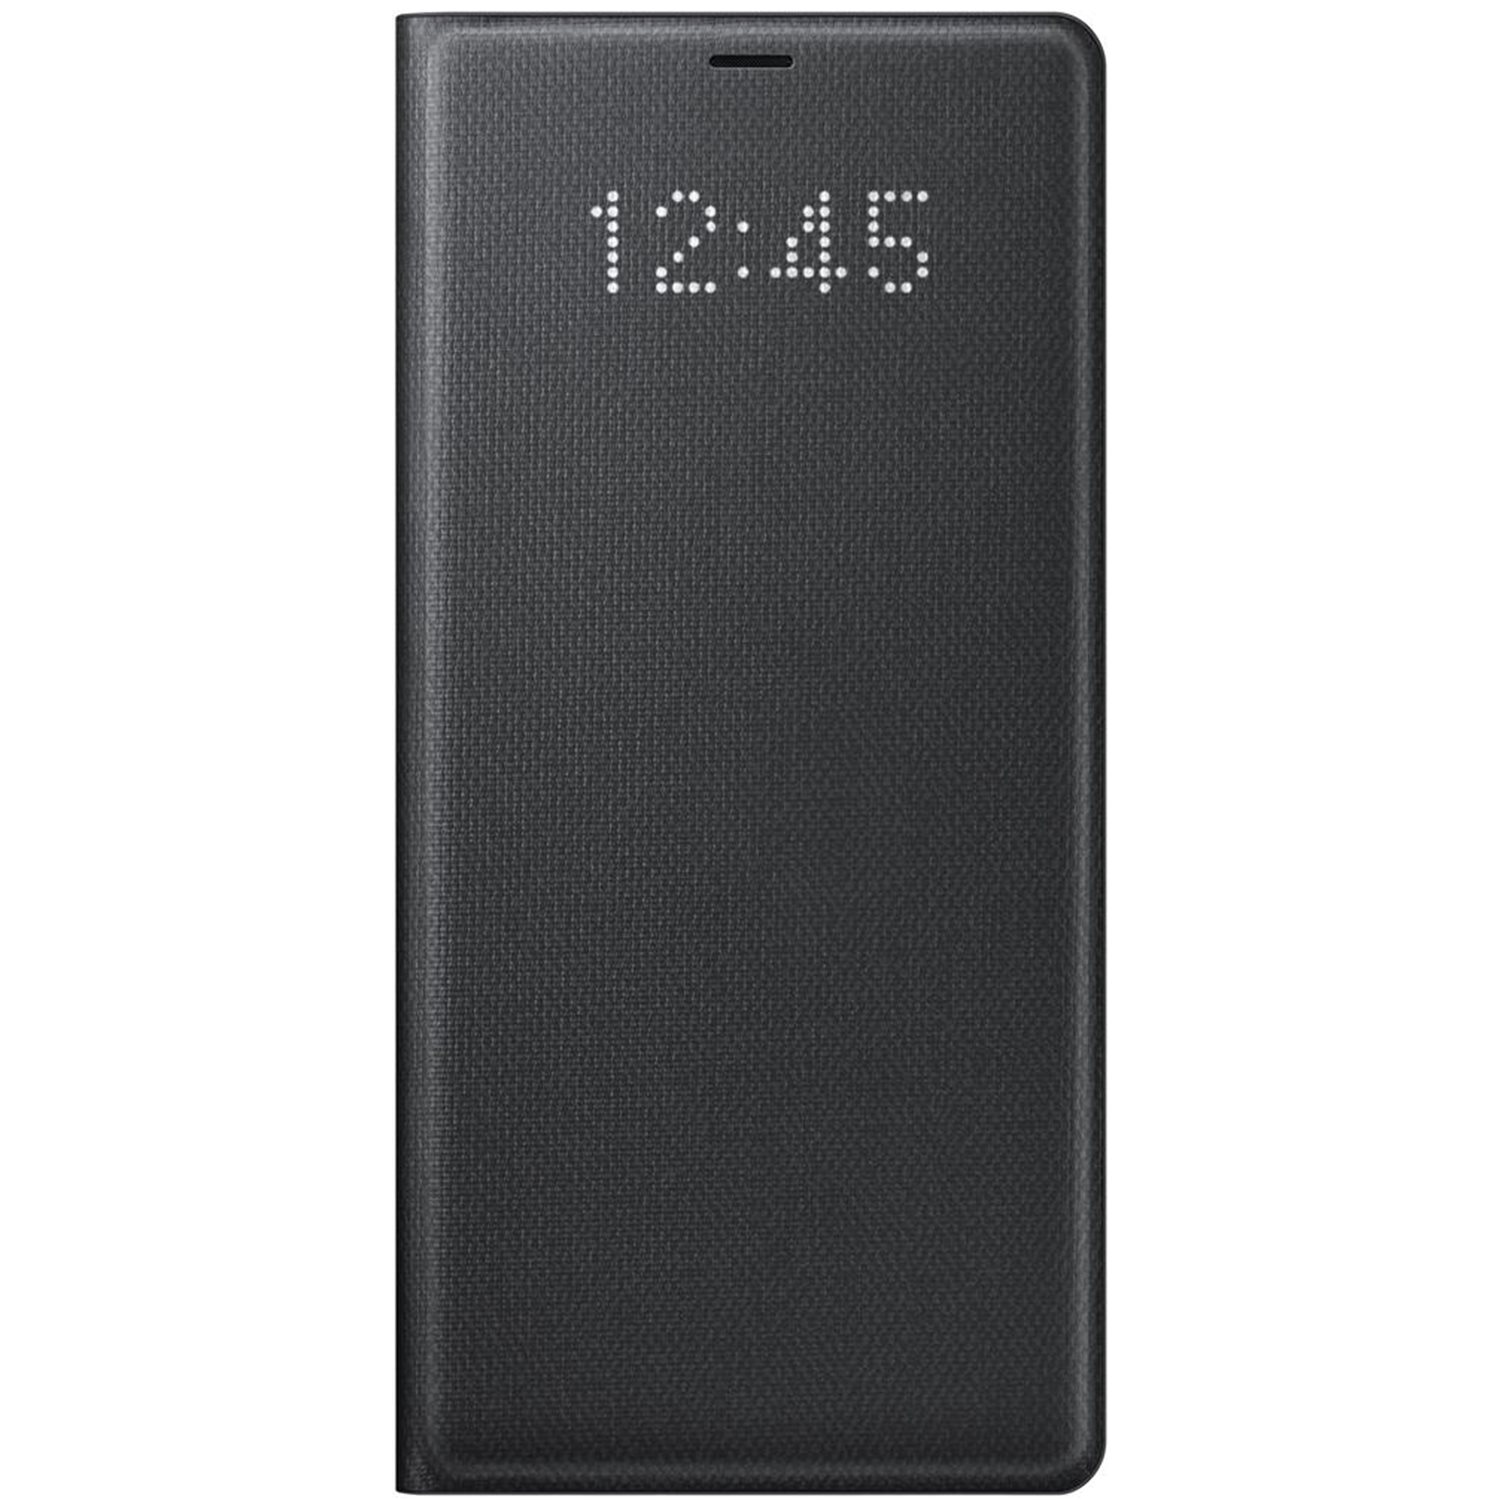 Official Samsung Galaxy Note 8 LED View Cover Case - Black